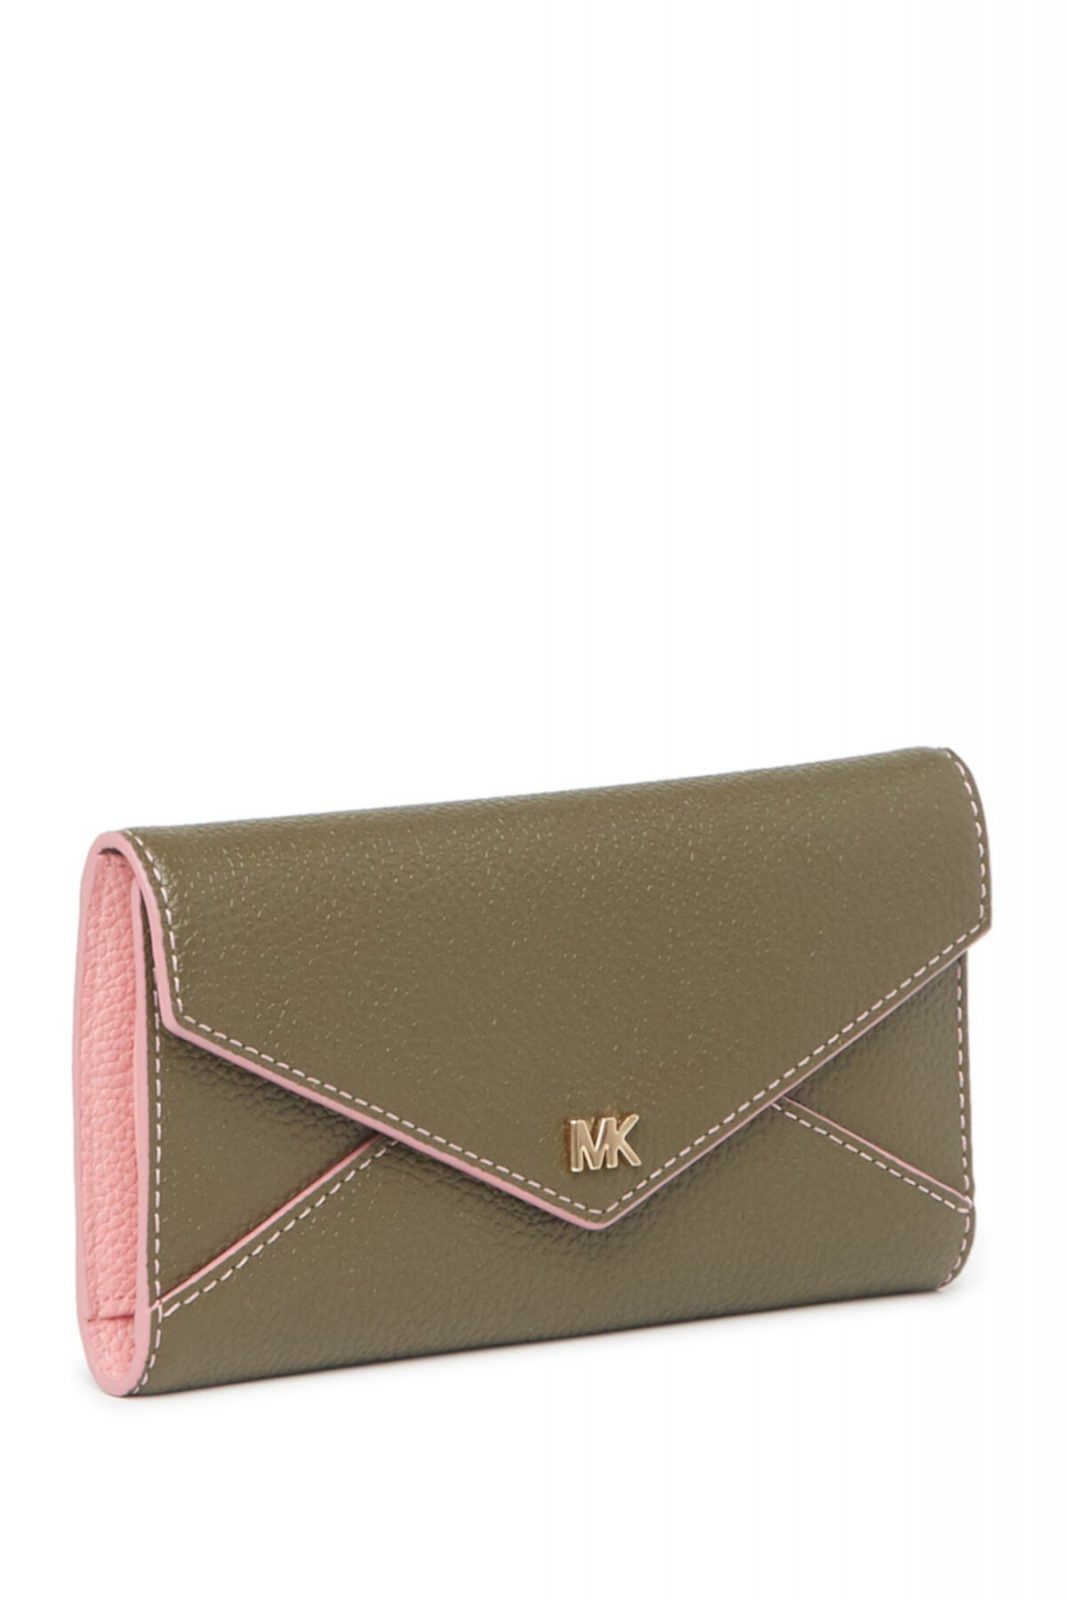 Slim Leather Trifold Envelope Wallet Michael Kors